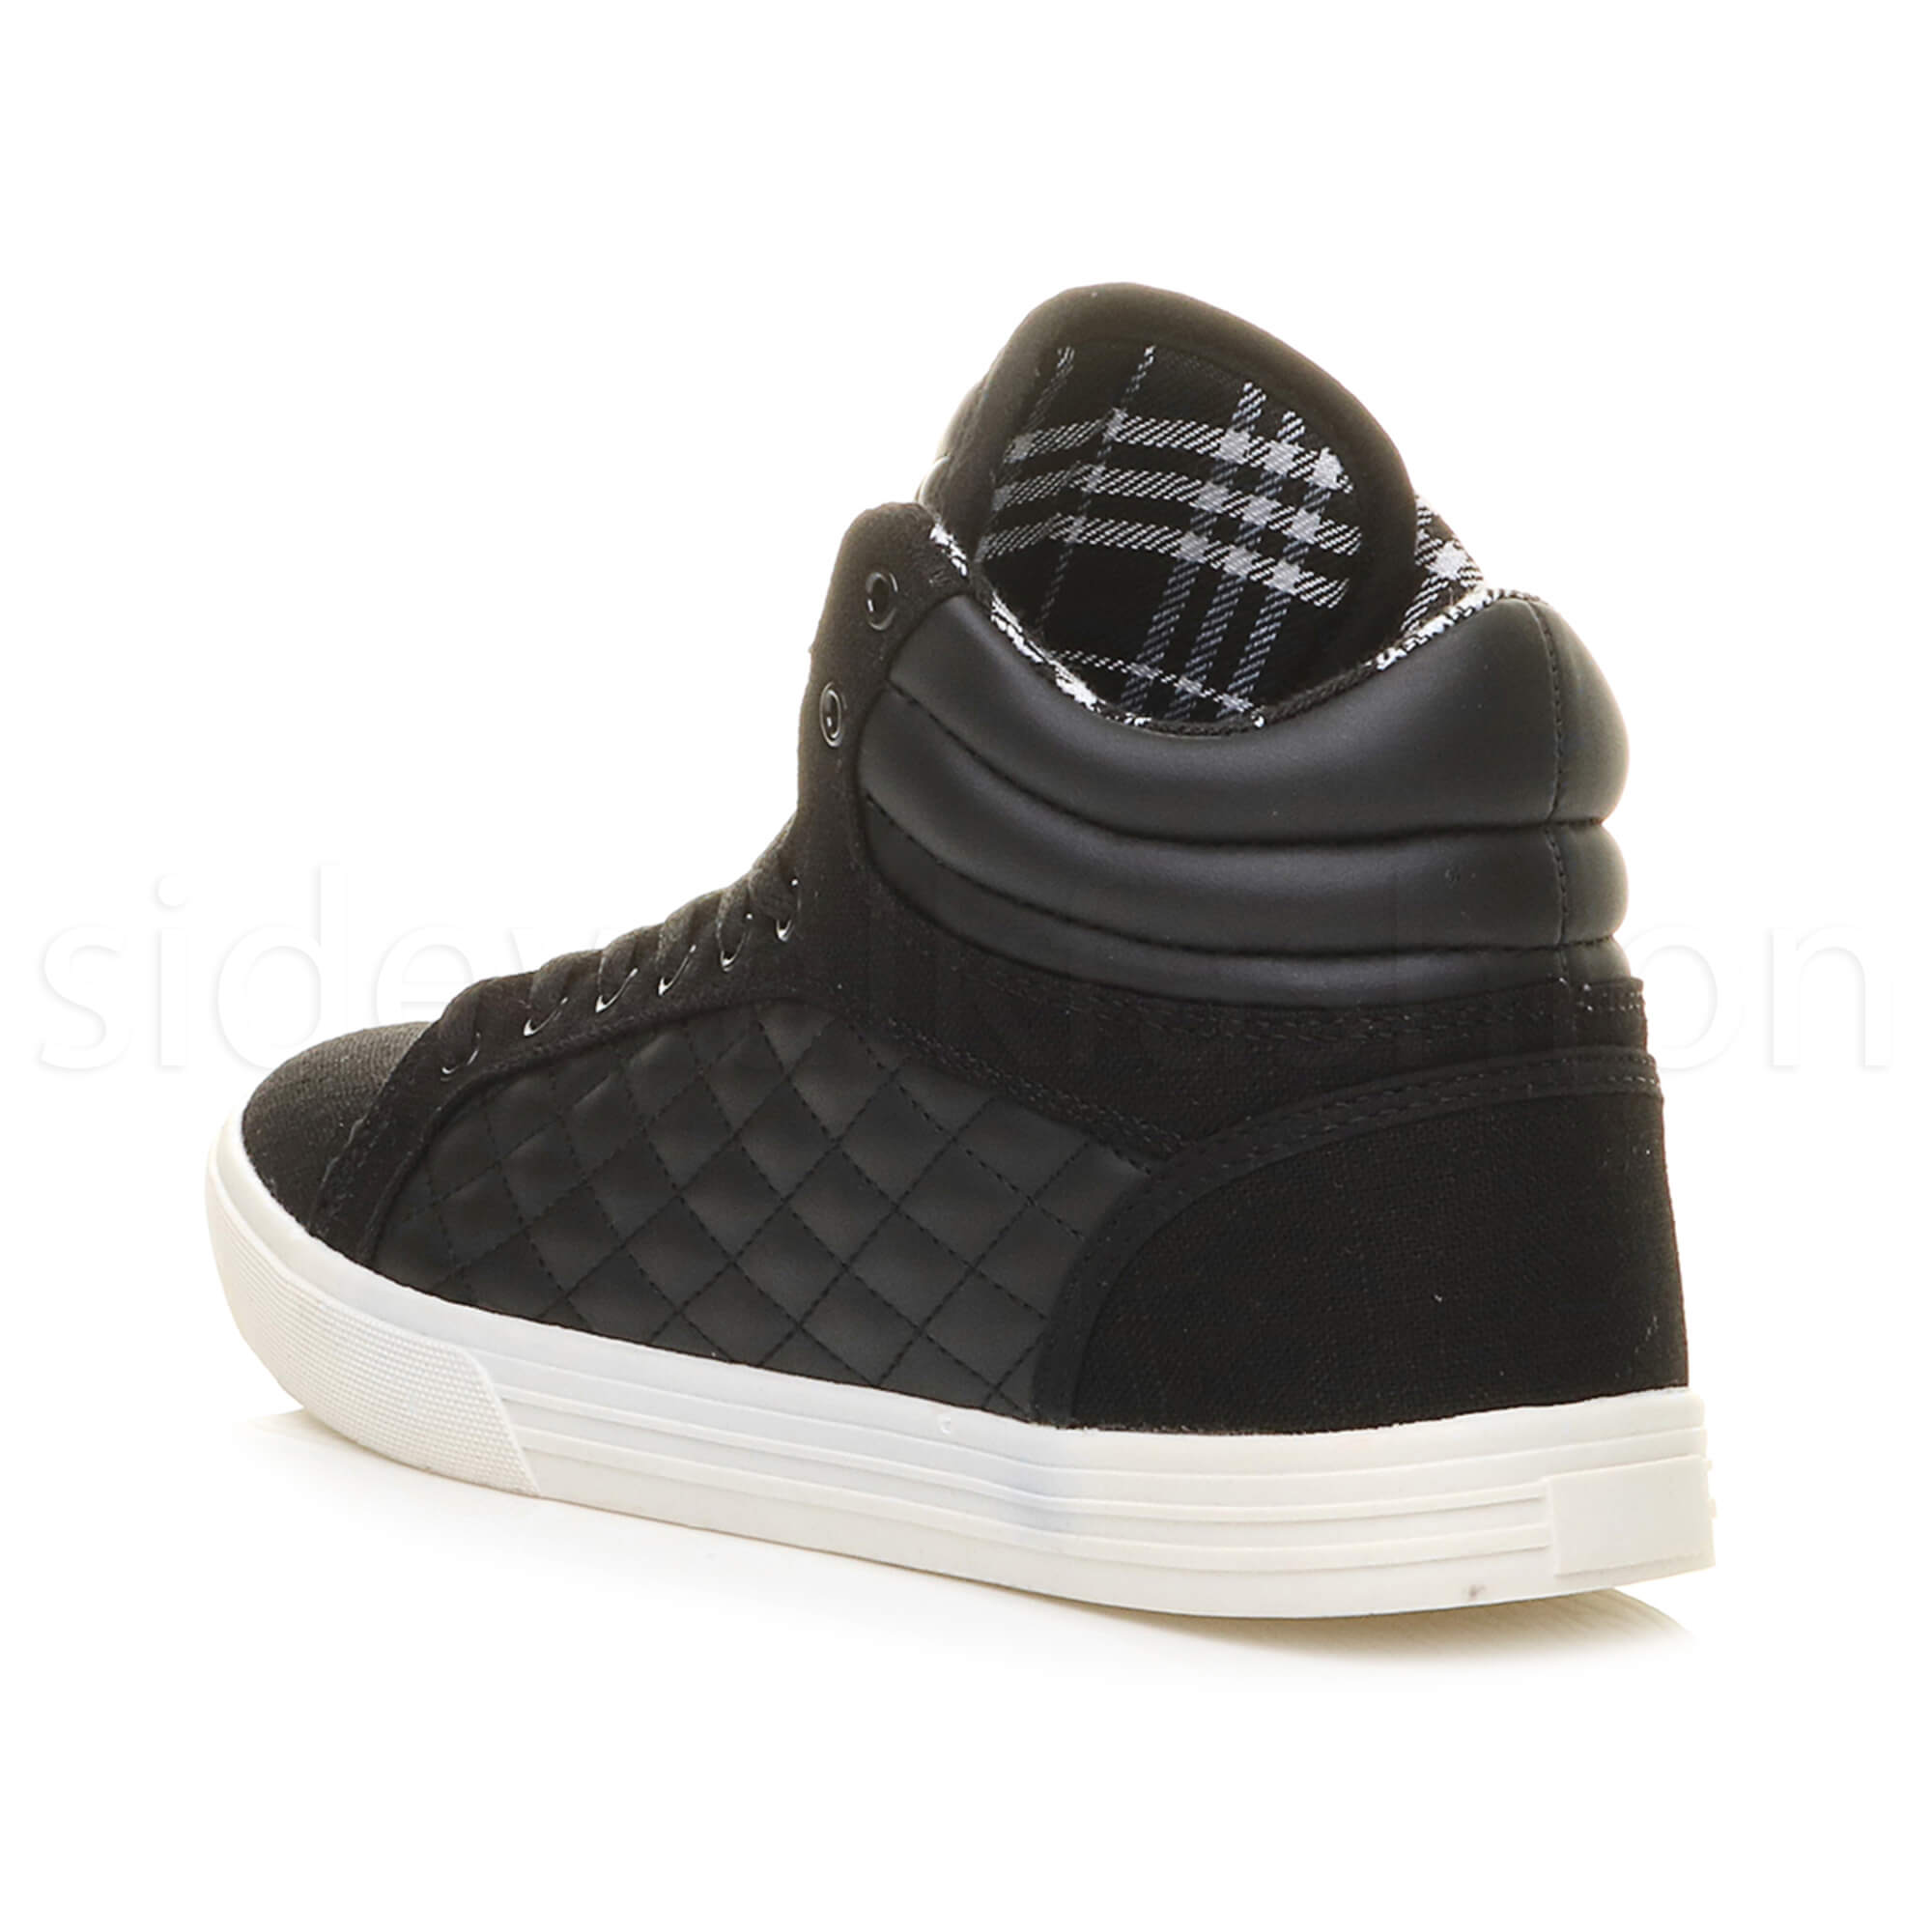 Mens-flat-lace-up-quilted-casual-hi-high-top-ankle-boots-trainers-sneakers-size thumbnail 5